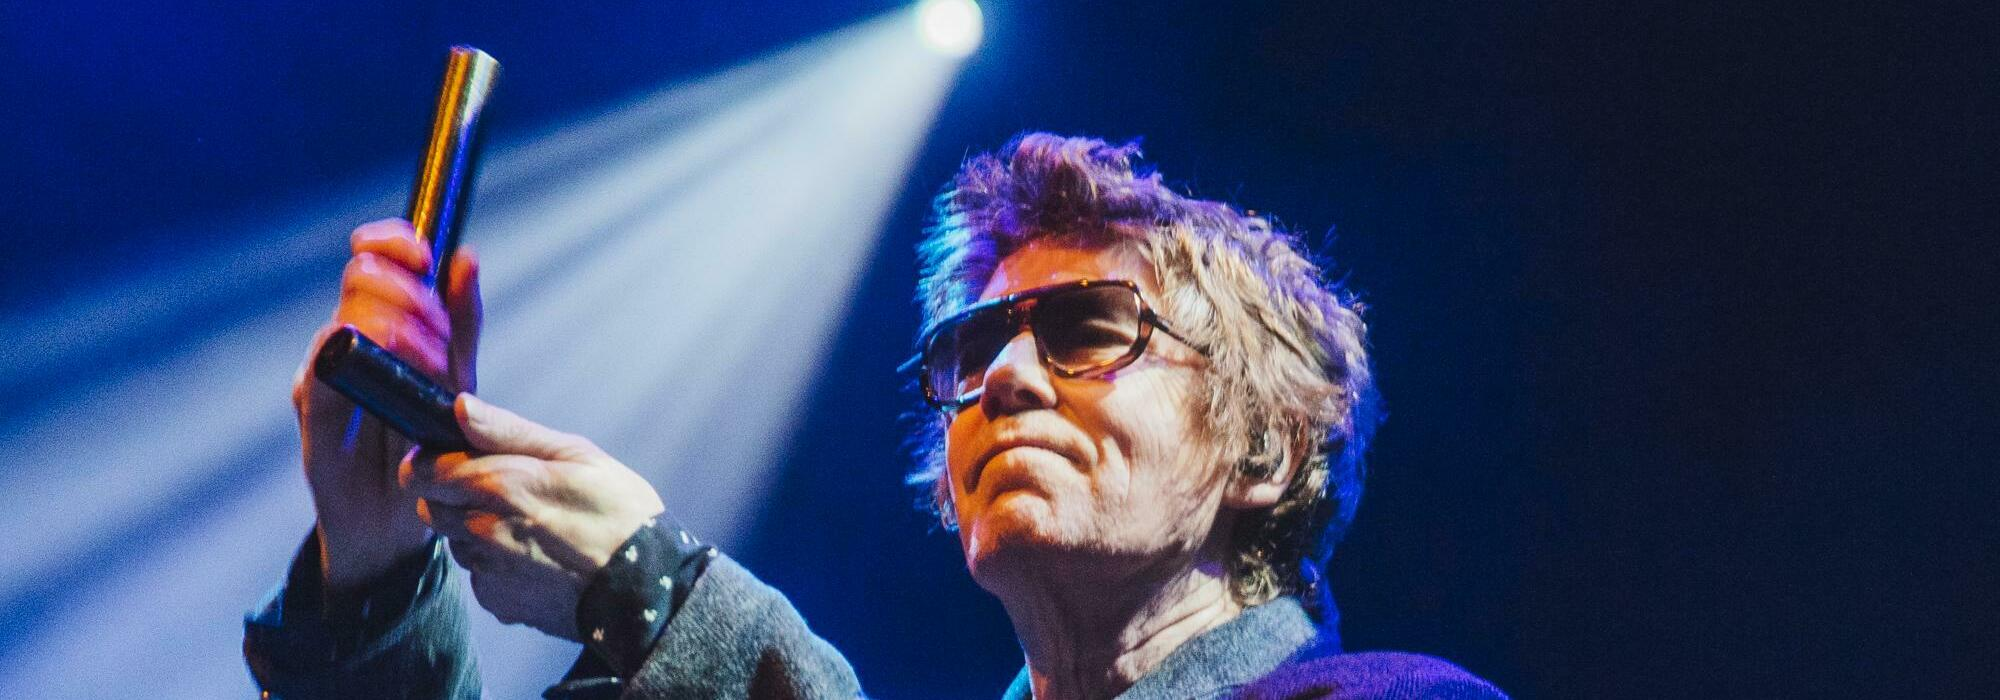 A The Psychedelic Furs live event